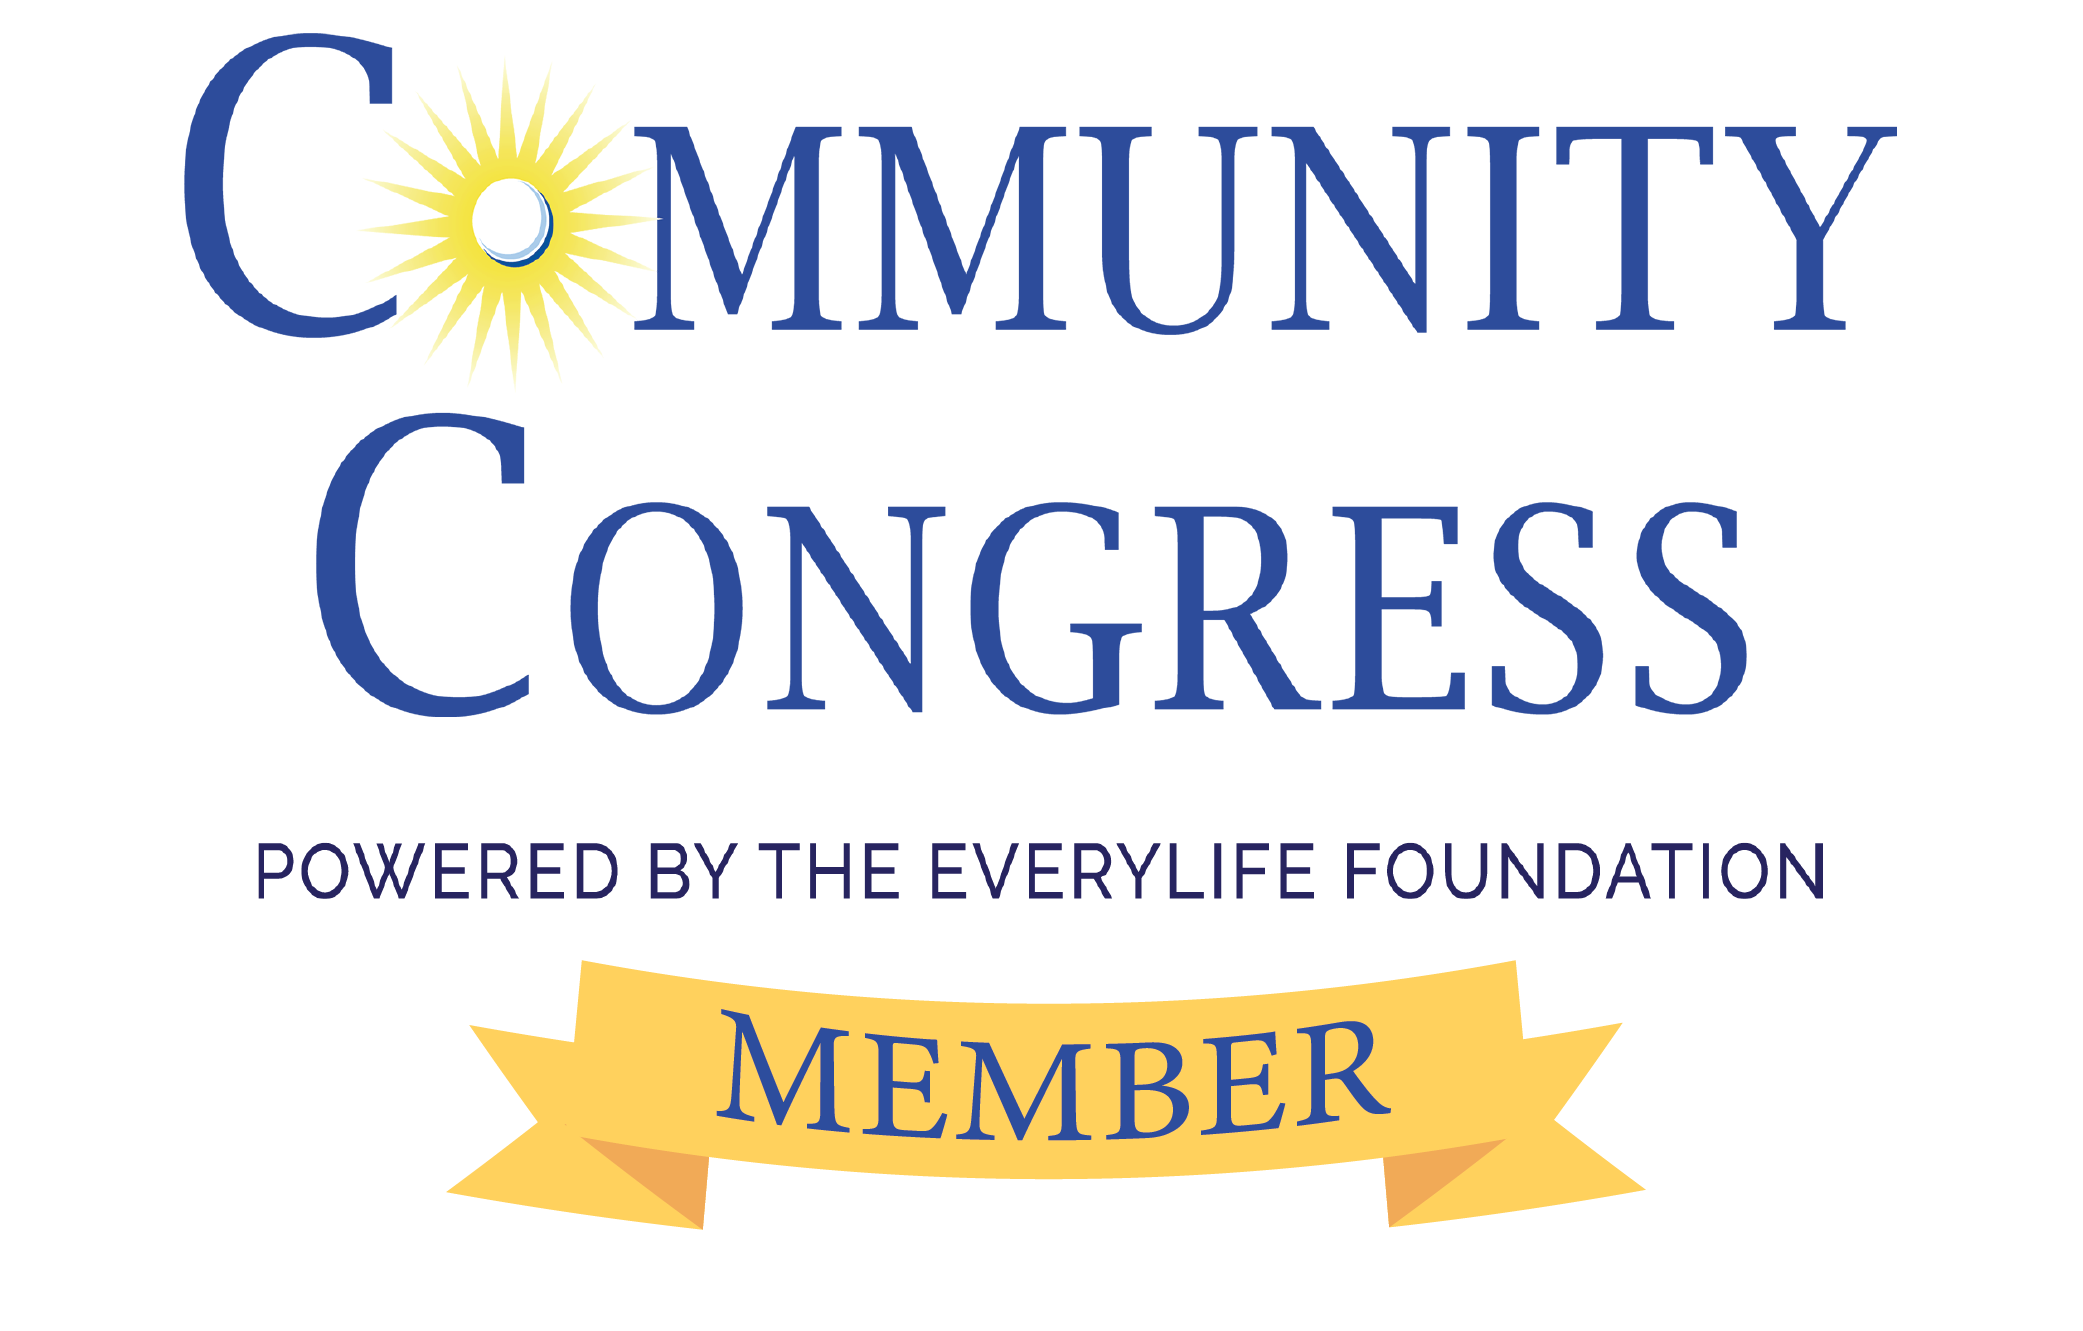 MSU is a Member of the Community Congress